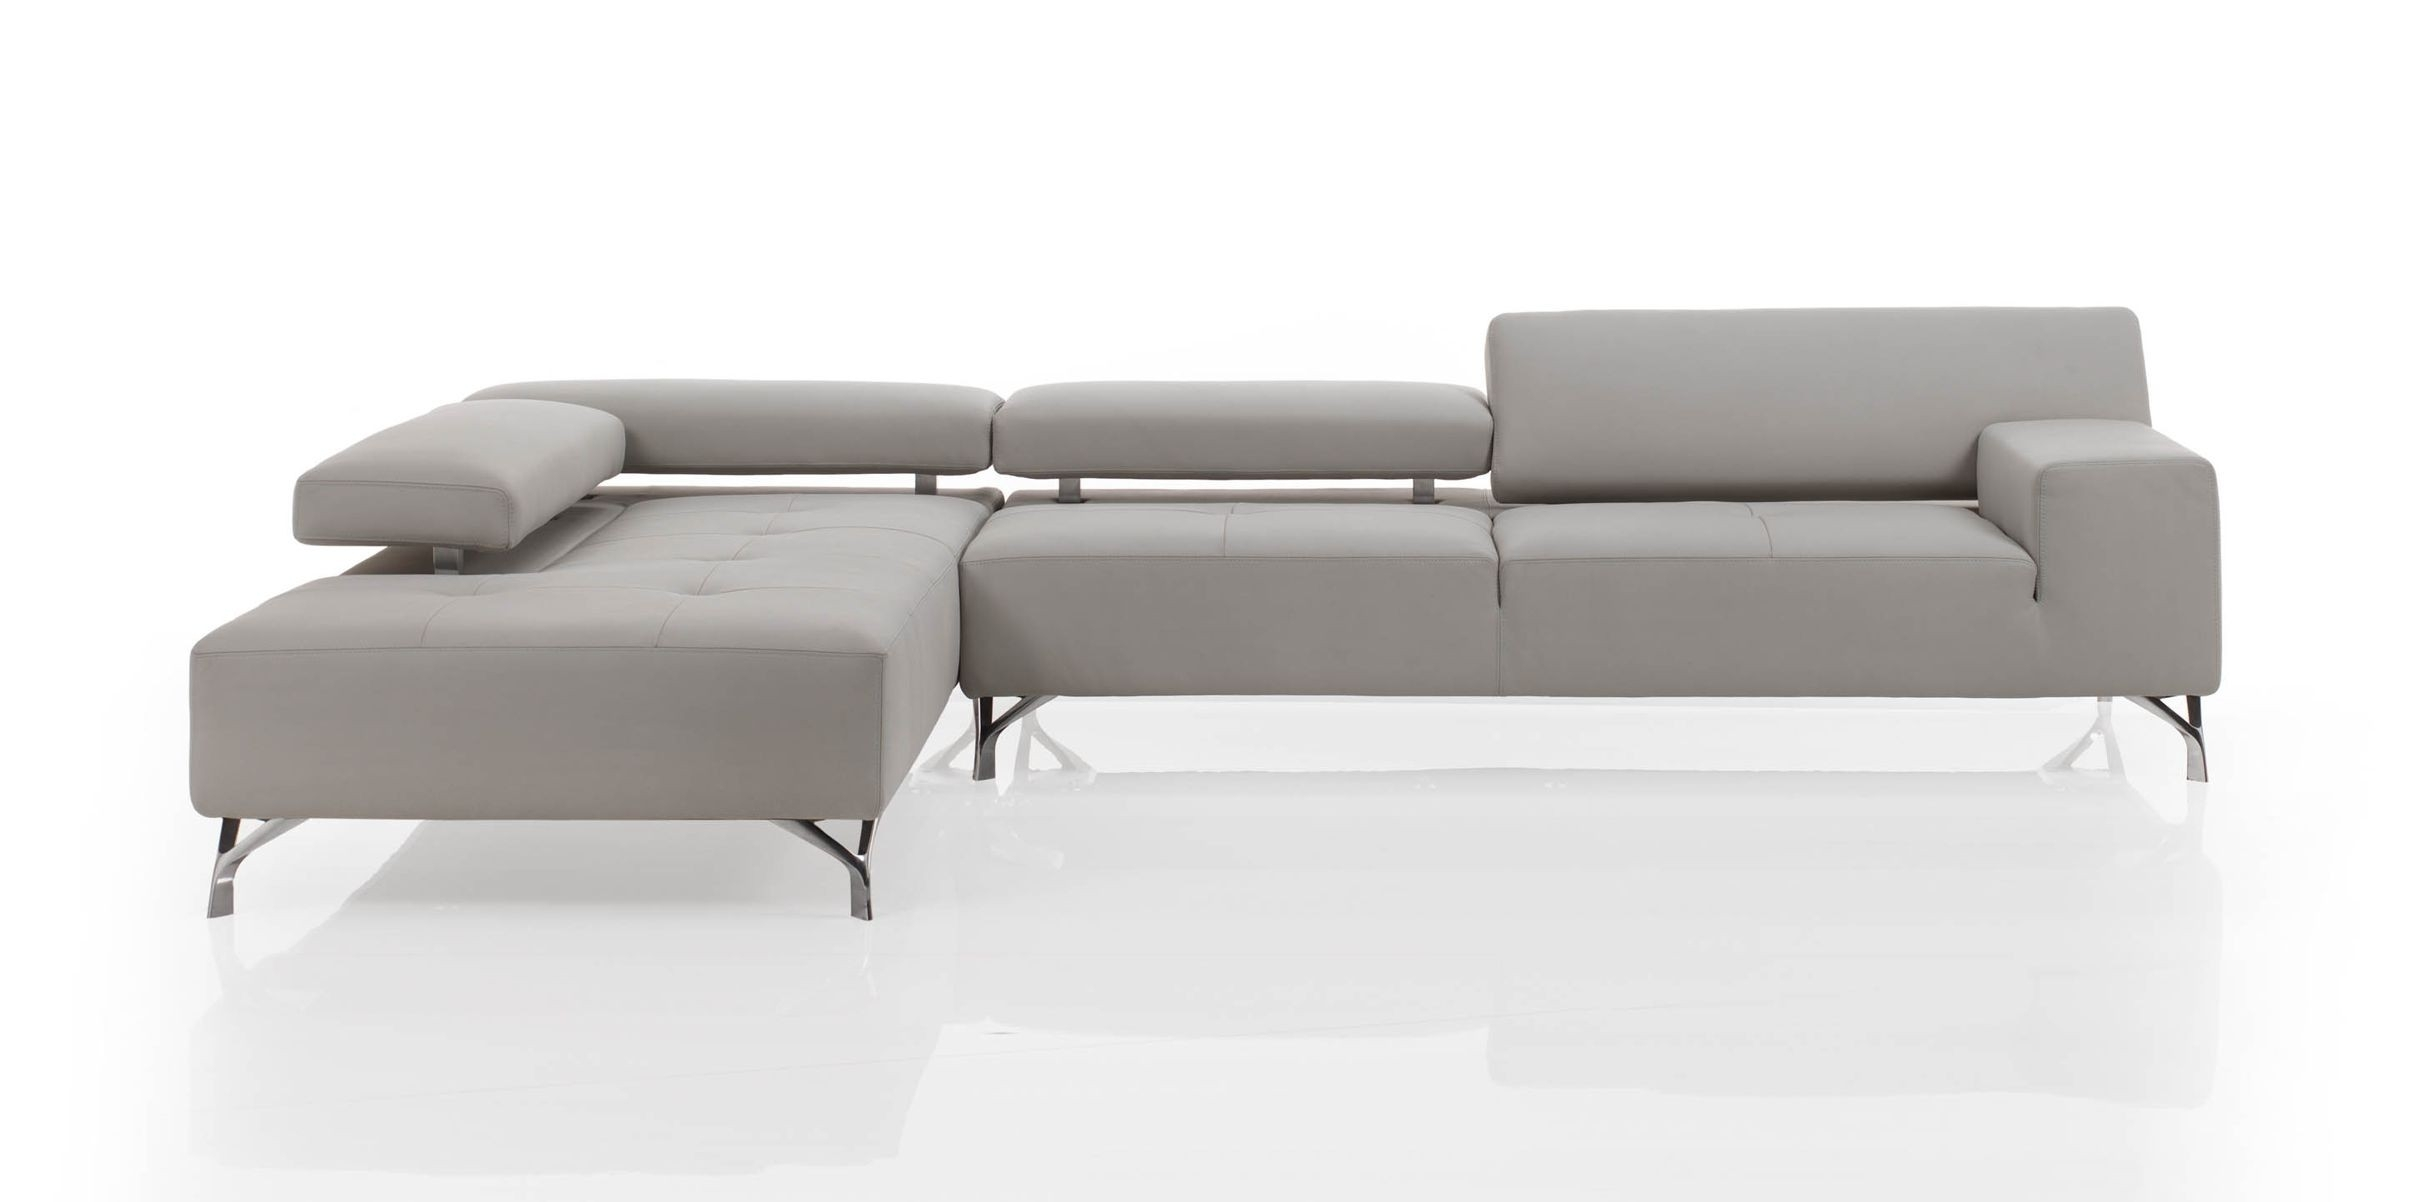 Miami Modern Sectional Sofa | Cierre Imbottiti inside Miami Sectional Sofas (Image 2 of 10)